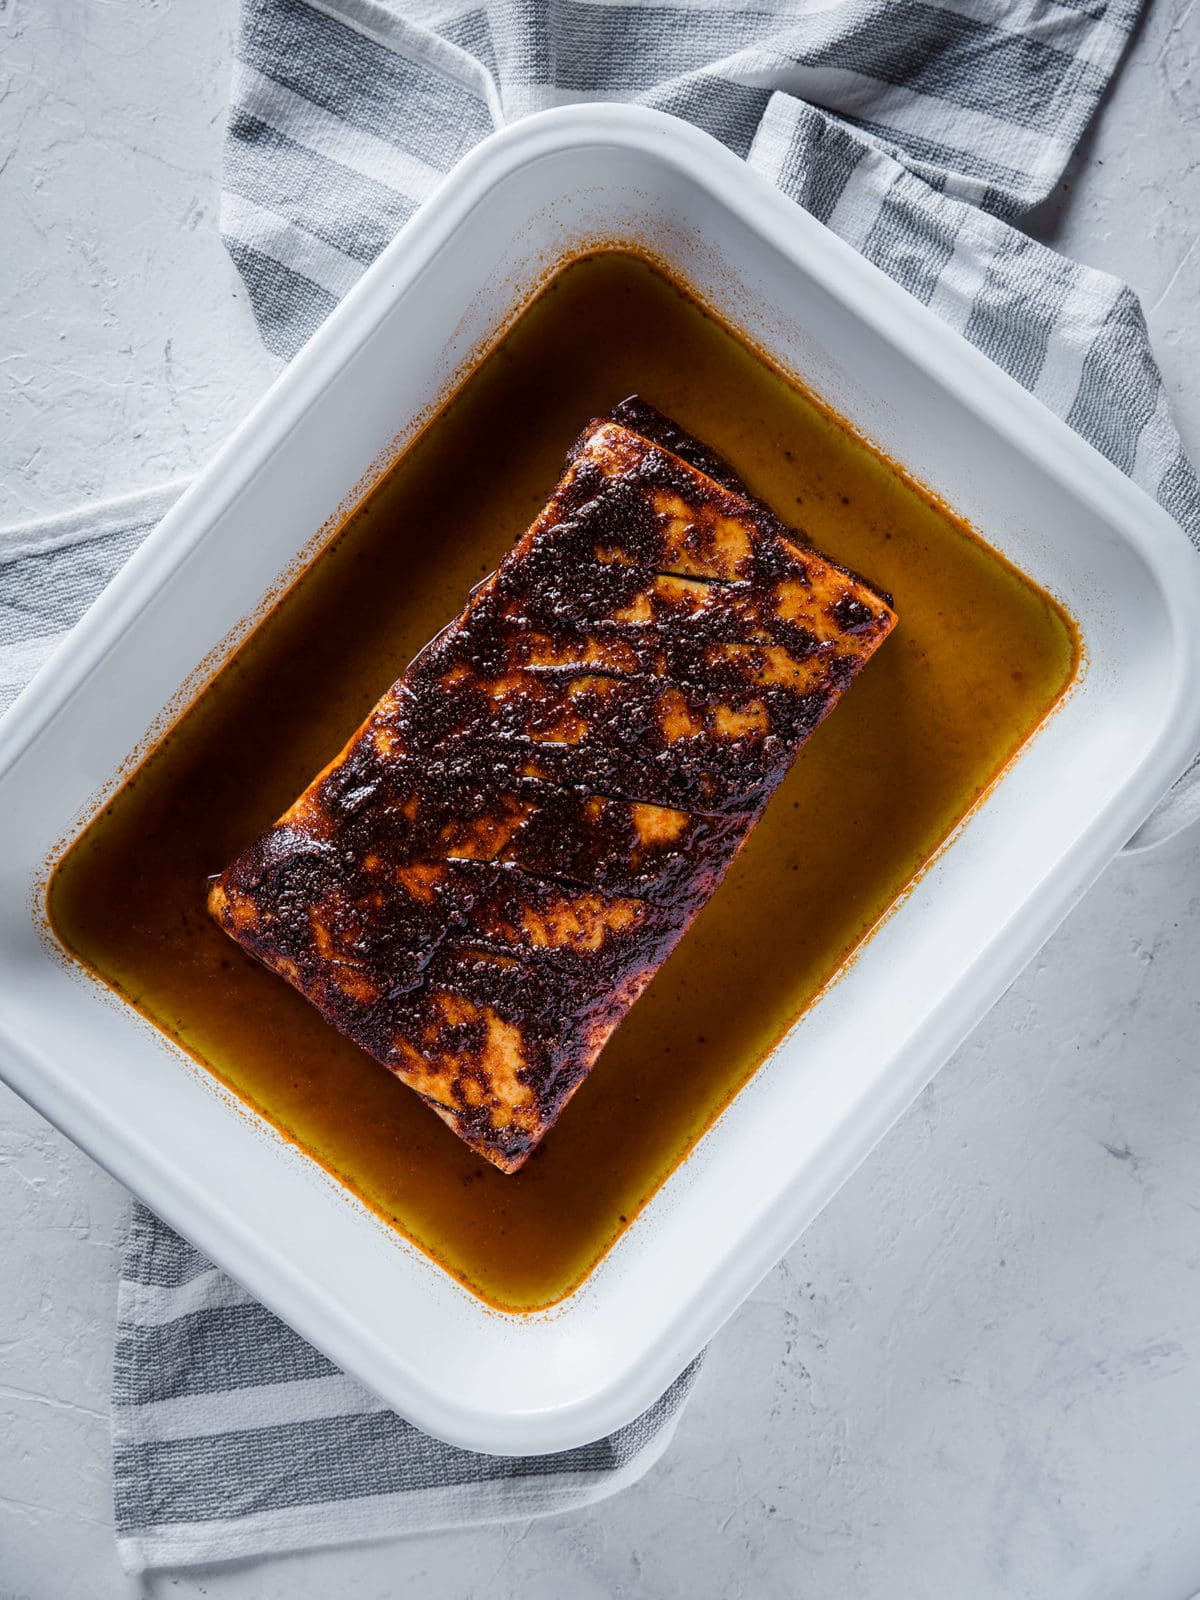 pork belly in a white baking dish, rubbed down with olive oil and coffee barbecue dry rub, surrounded by beef stock